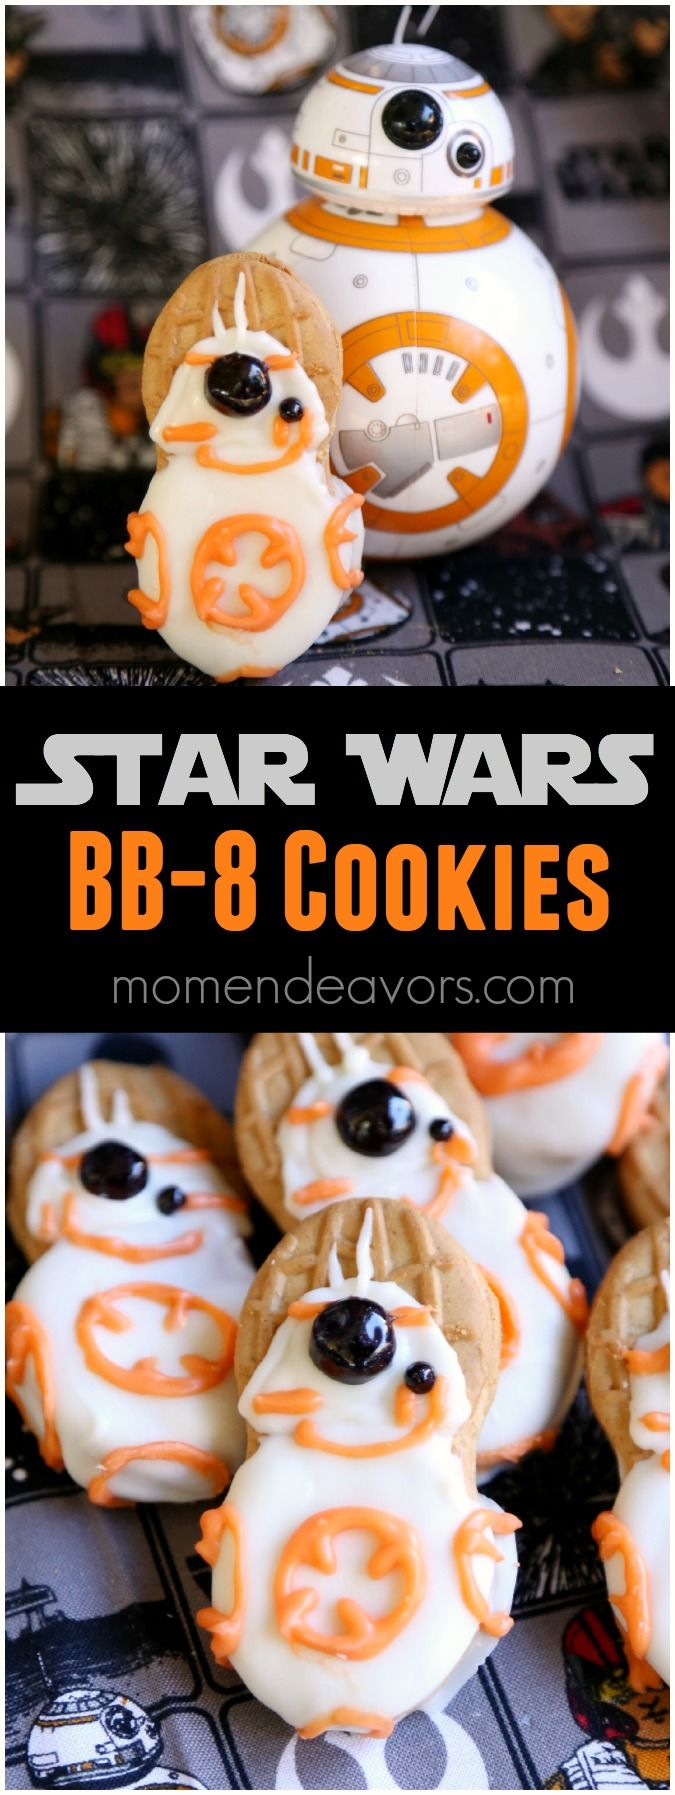 Star Wars The Force Awakens BB-8 No-Bake Cookies